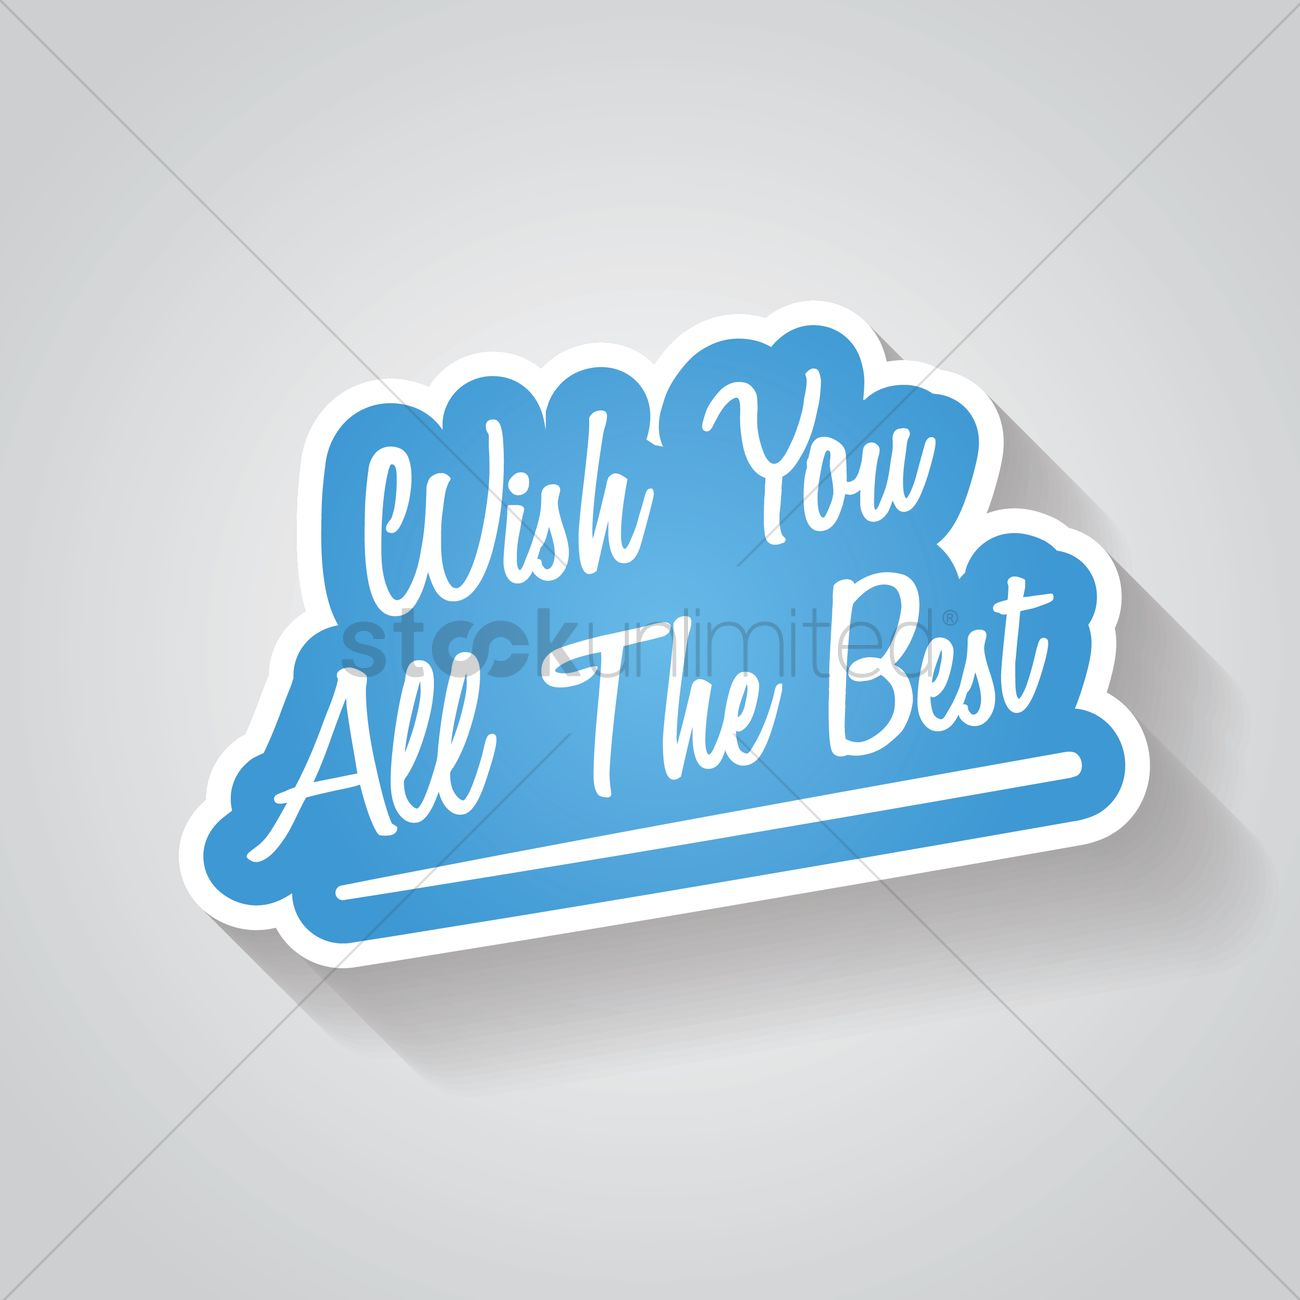 Wish you all the best sign vector image 1827951 for All the very best images